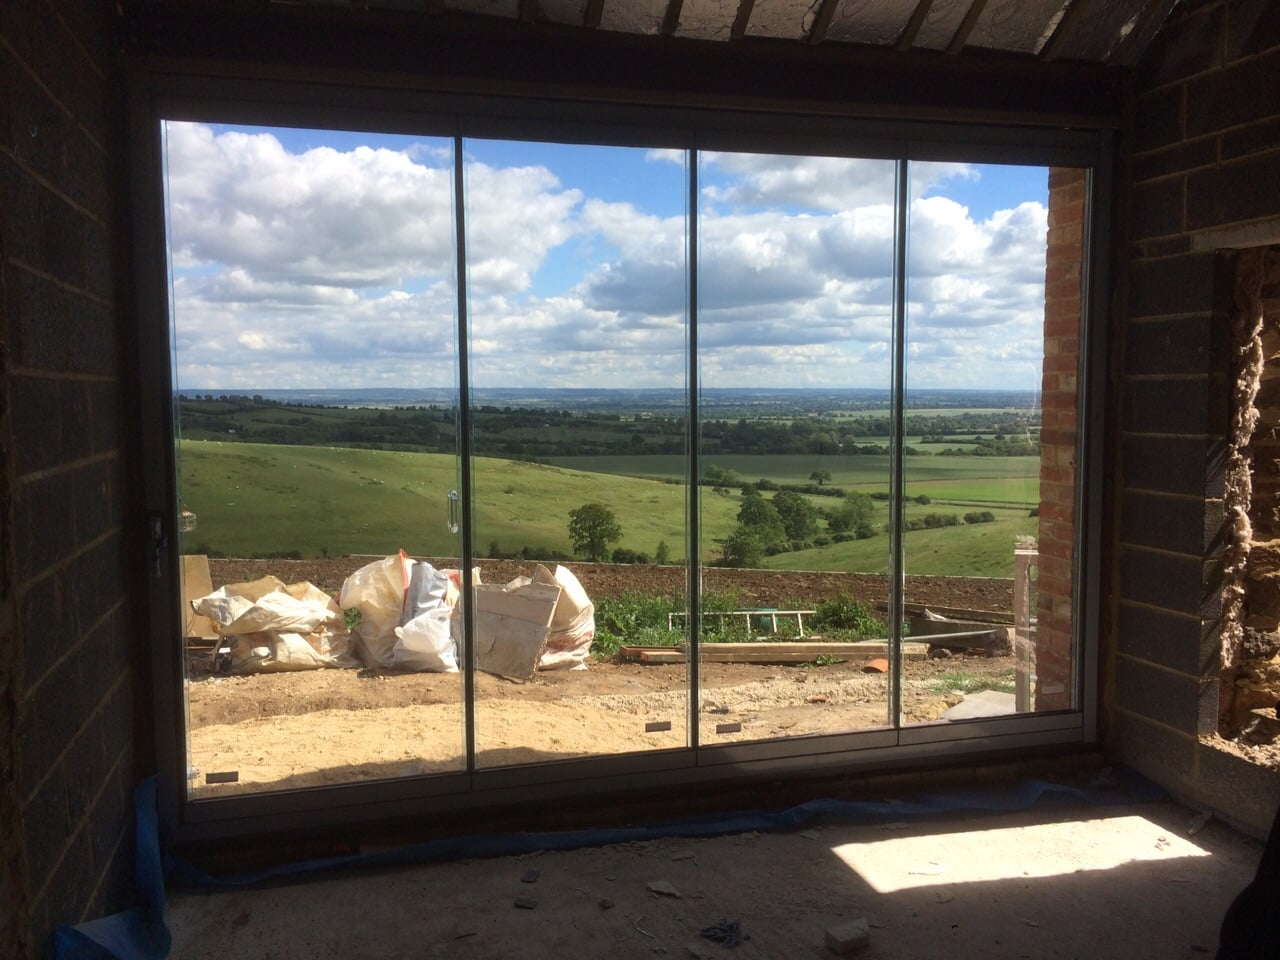 Frameless Glass Doors help keep the weather out